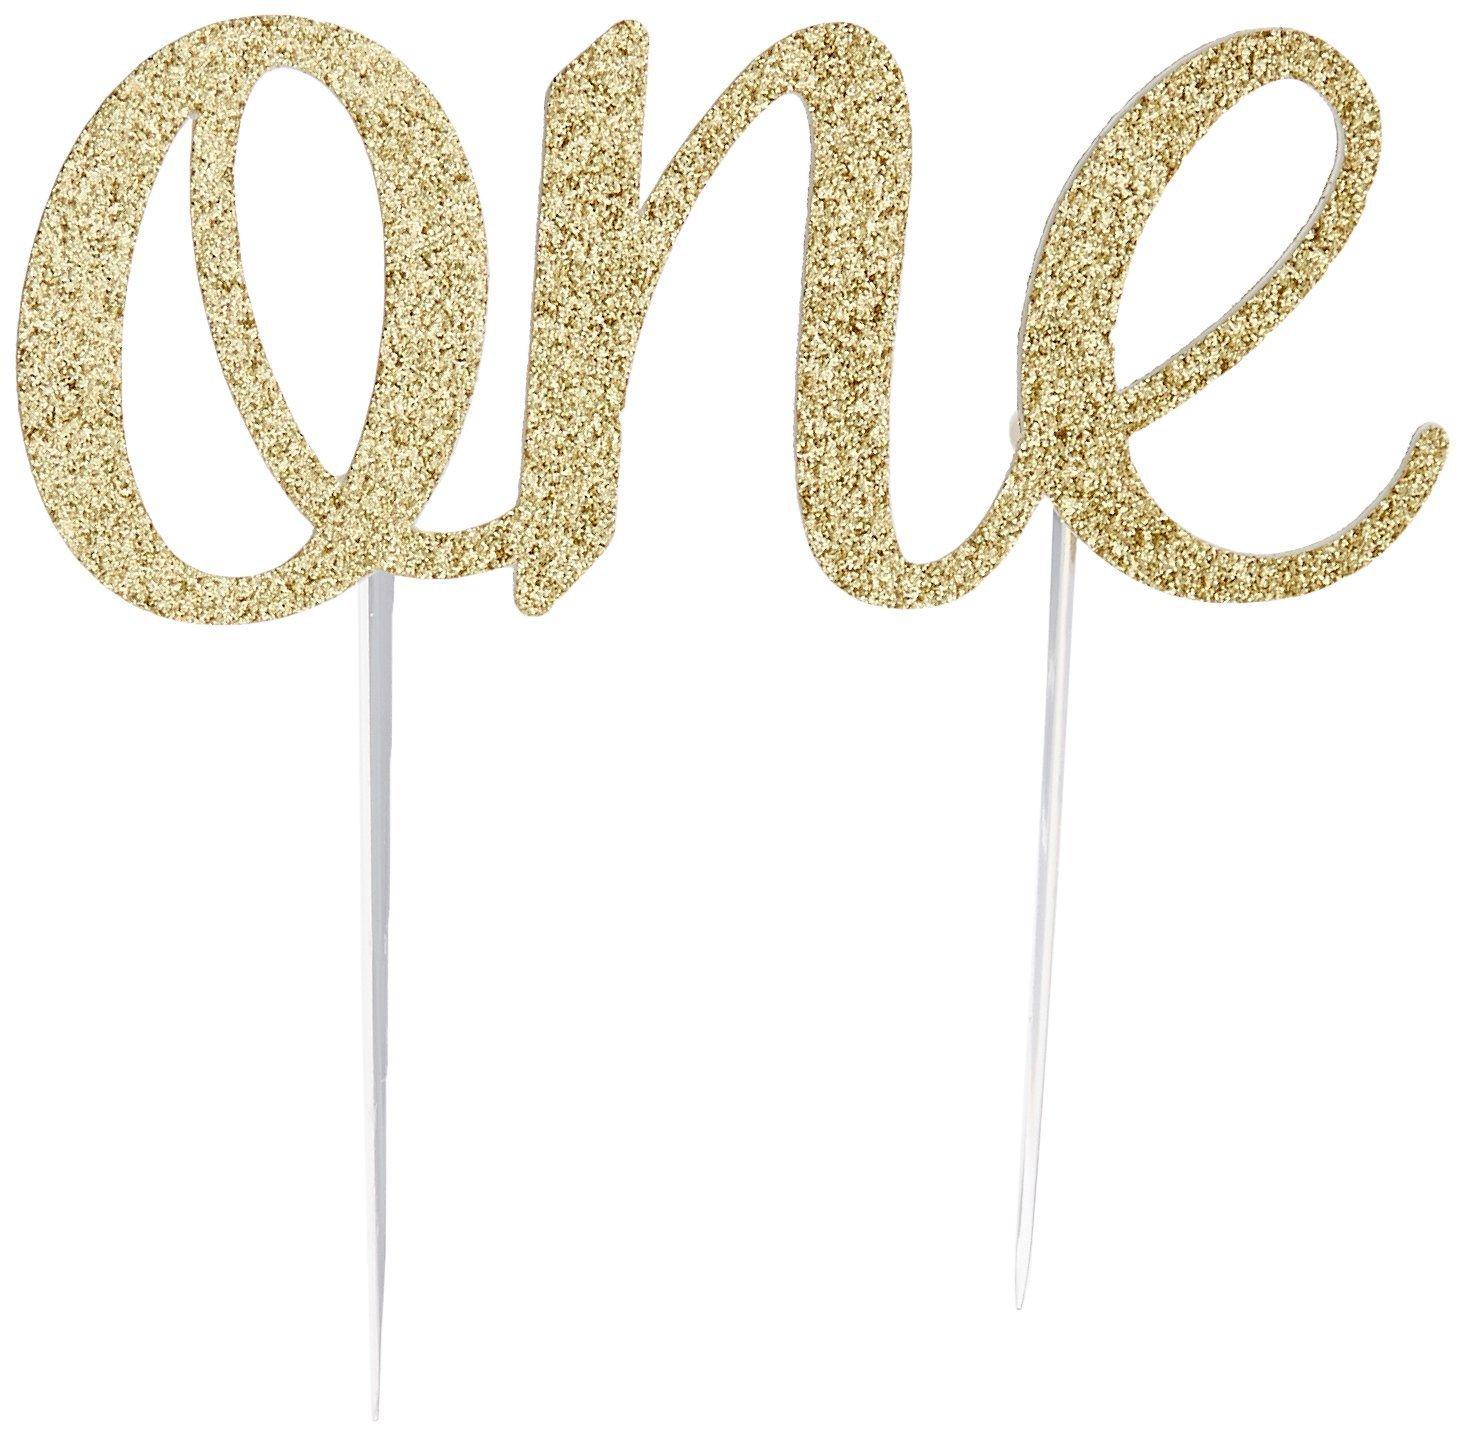 Handmade 1st First Birthday Cake Topper Decoration - One - Made in USA with Double Sided Glitter Stock (Gold)